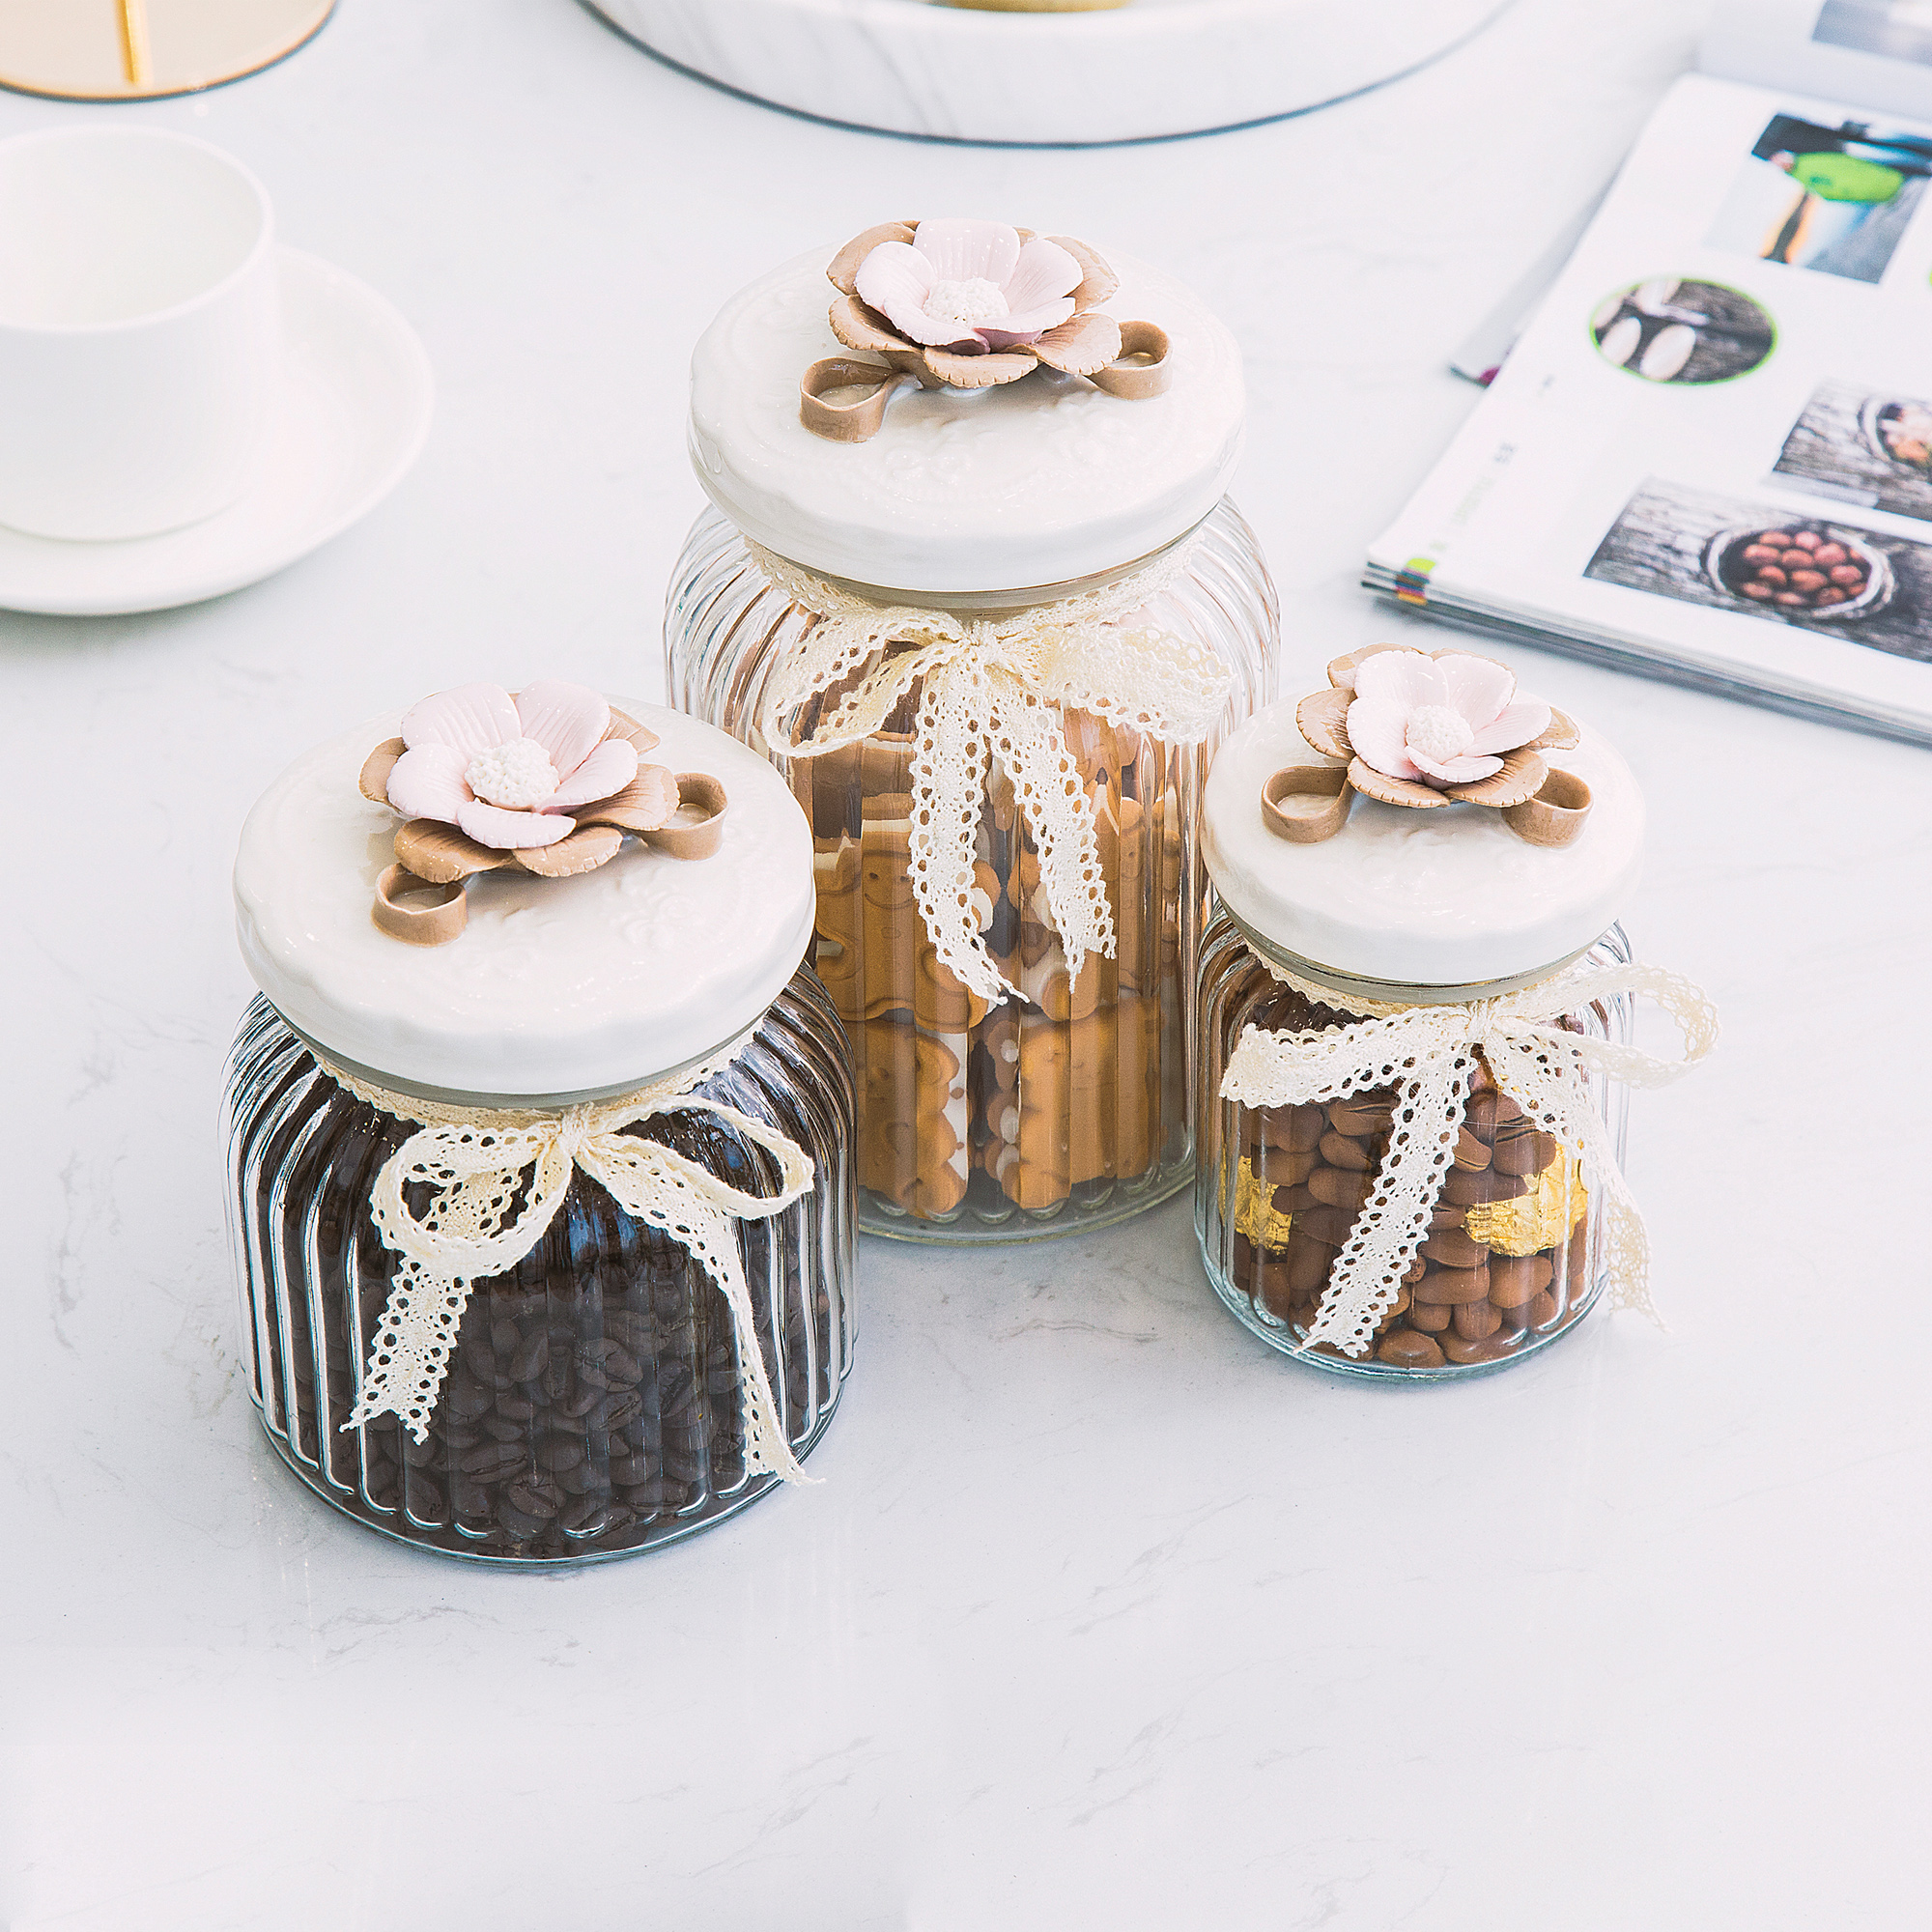 Usd 1221 creative home crafts wedding decoration candy jar glass creative home crafts wedding decoration candy jar glass candy jar sealed storage jar with cap americana junglespirit Image collections